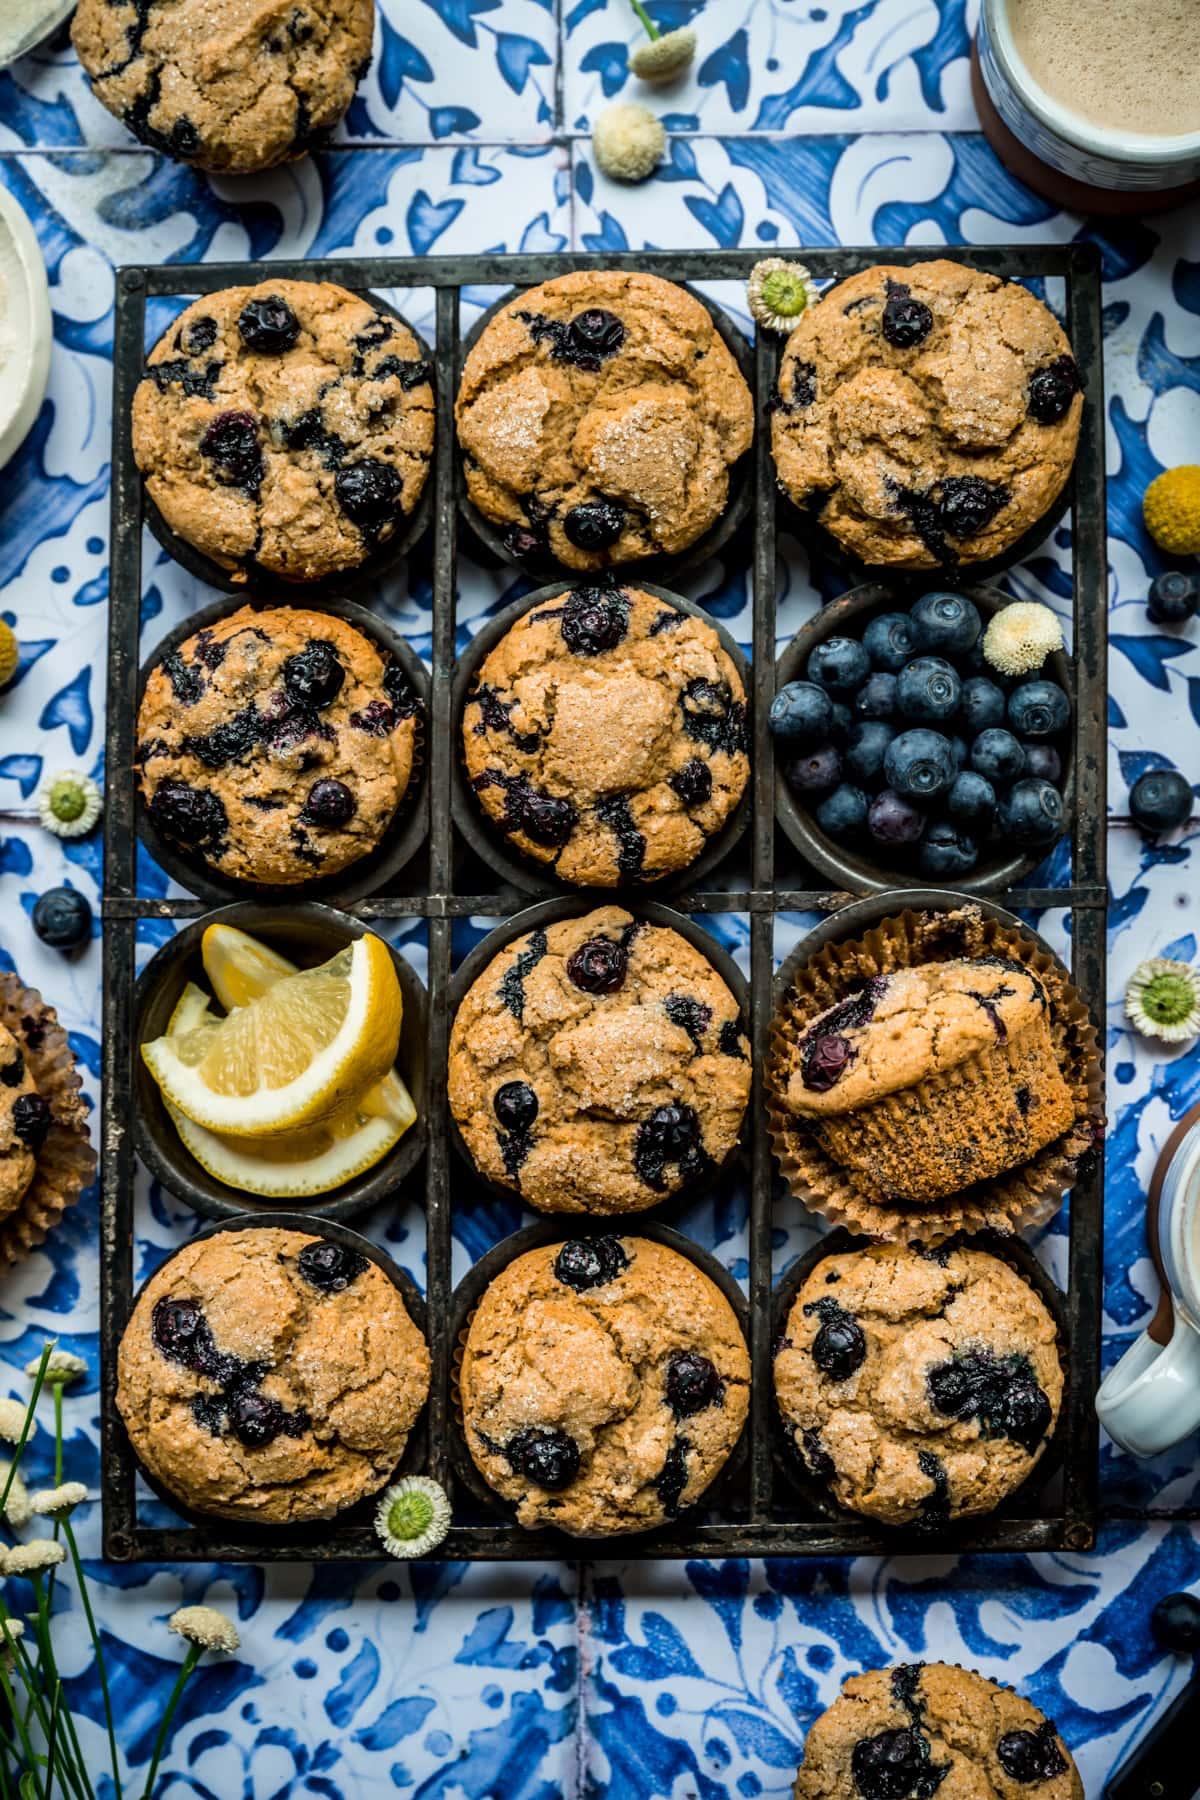 overhead view of vegan blueberry muffins in antique muffin tin on blue tile backdrop.